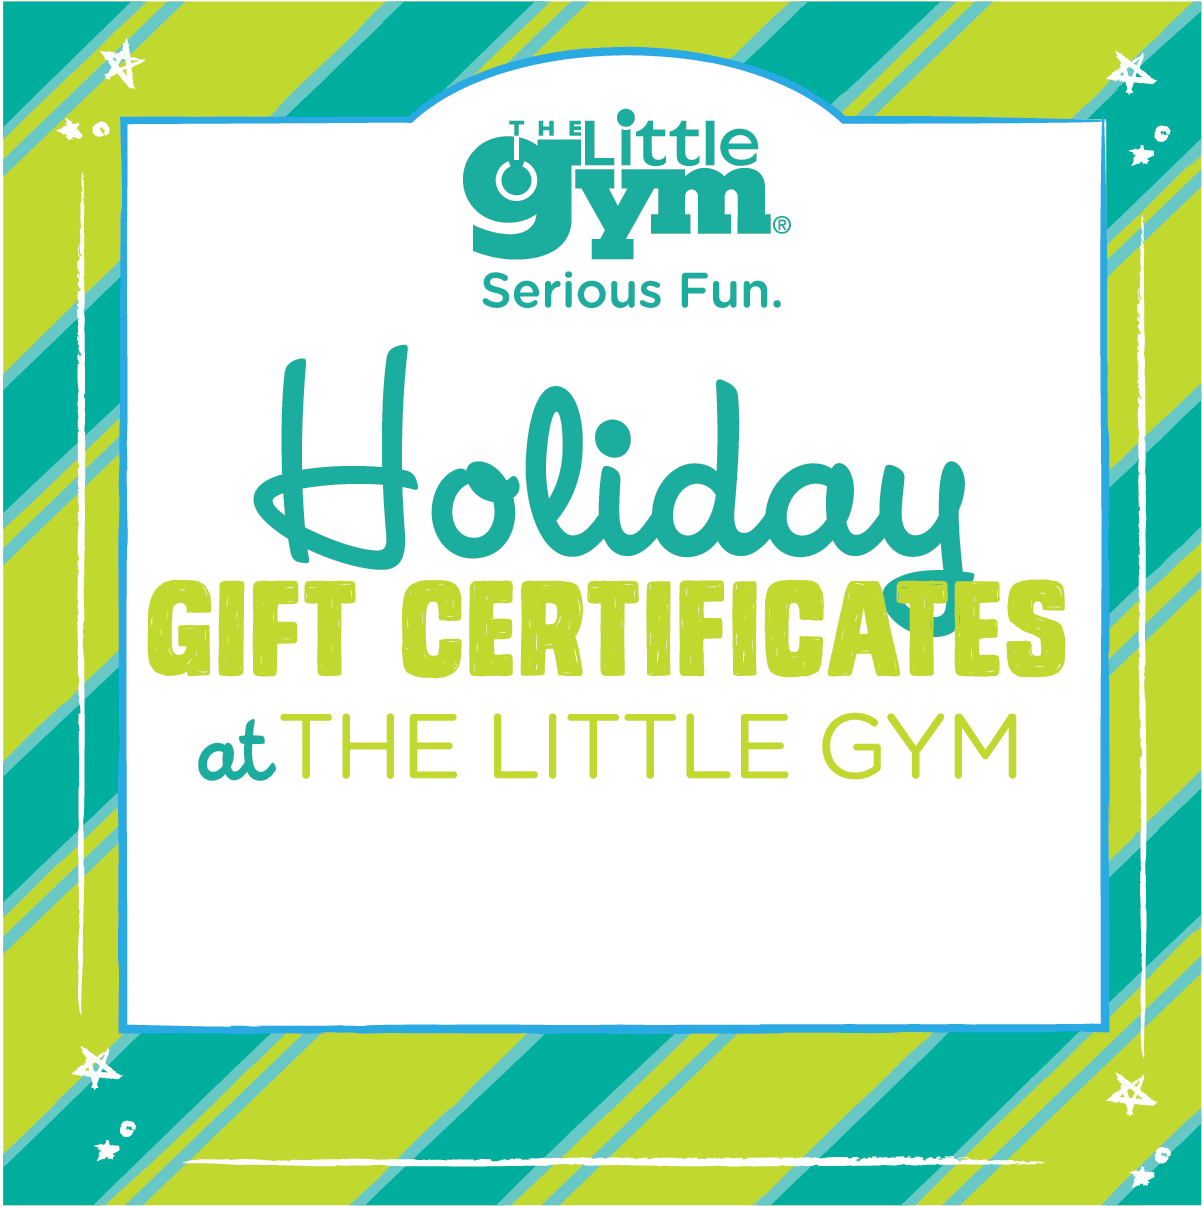 you see confidence they see adventure give the gift of the you see confidence they see adventure give the gift of the little gym